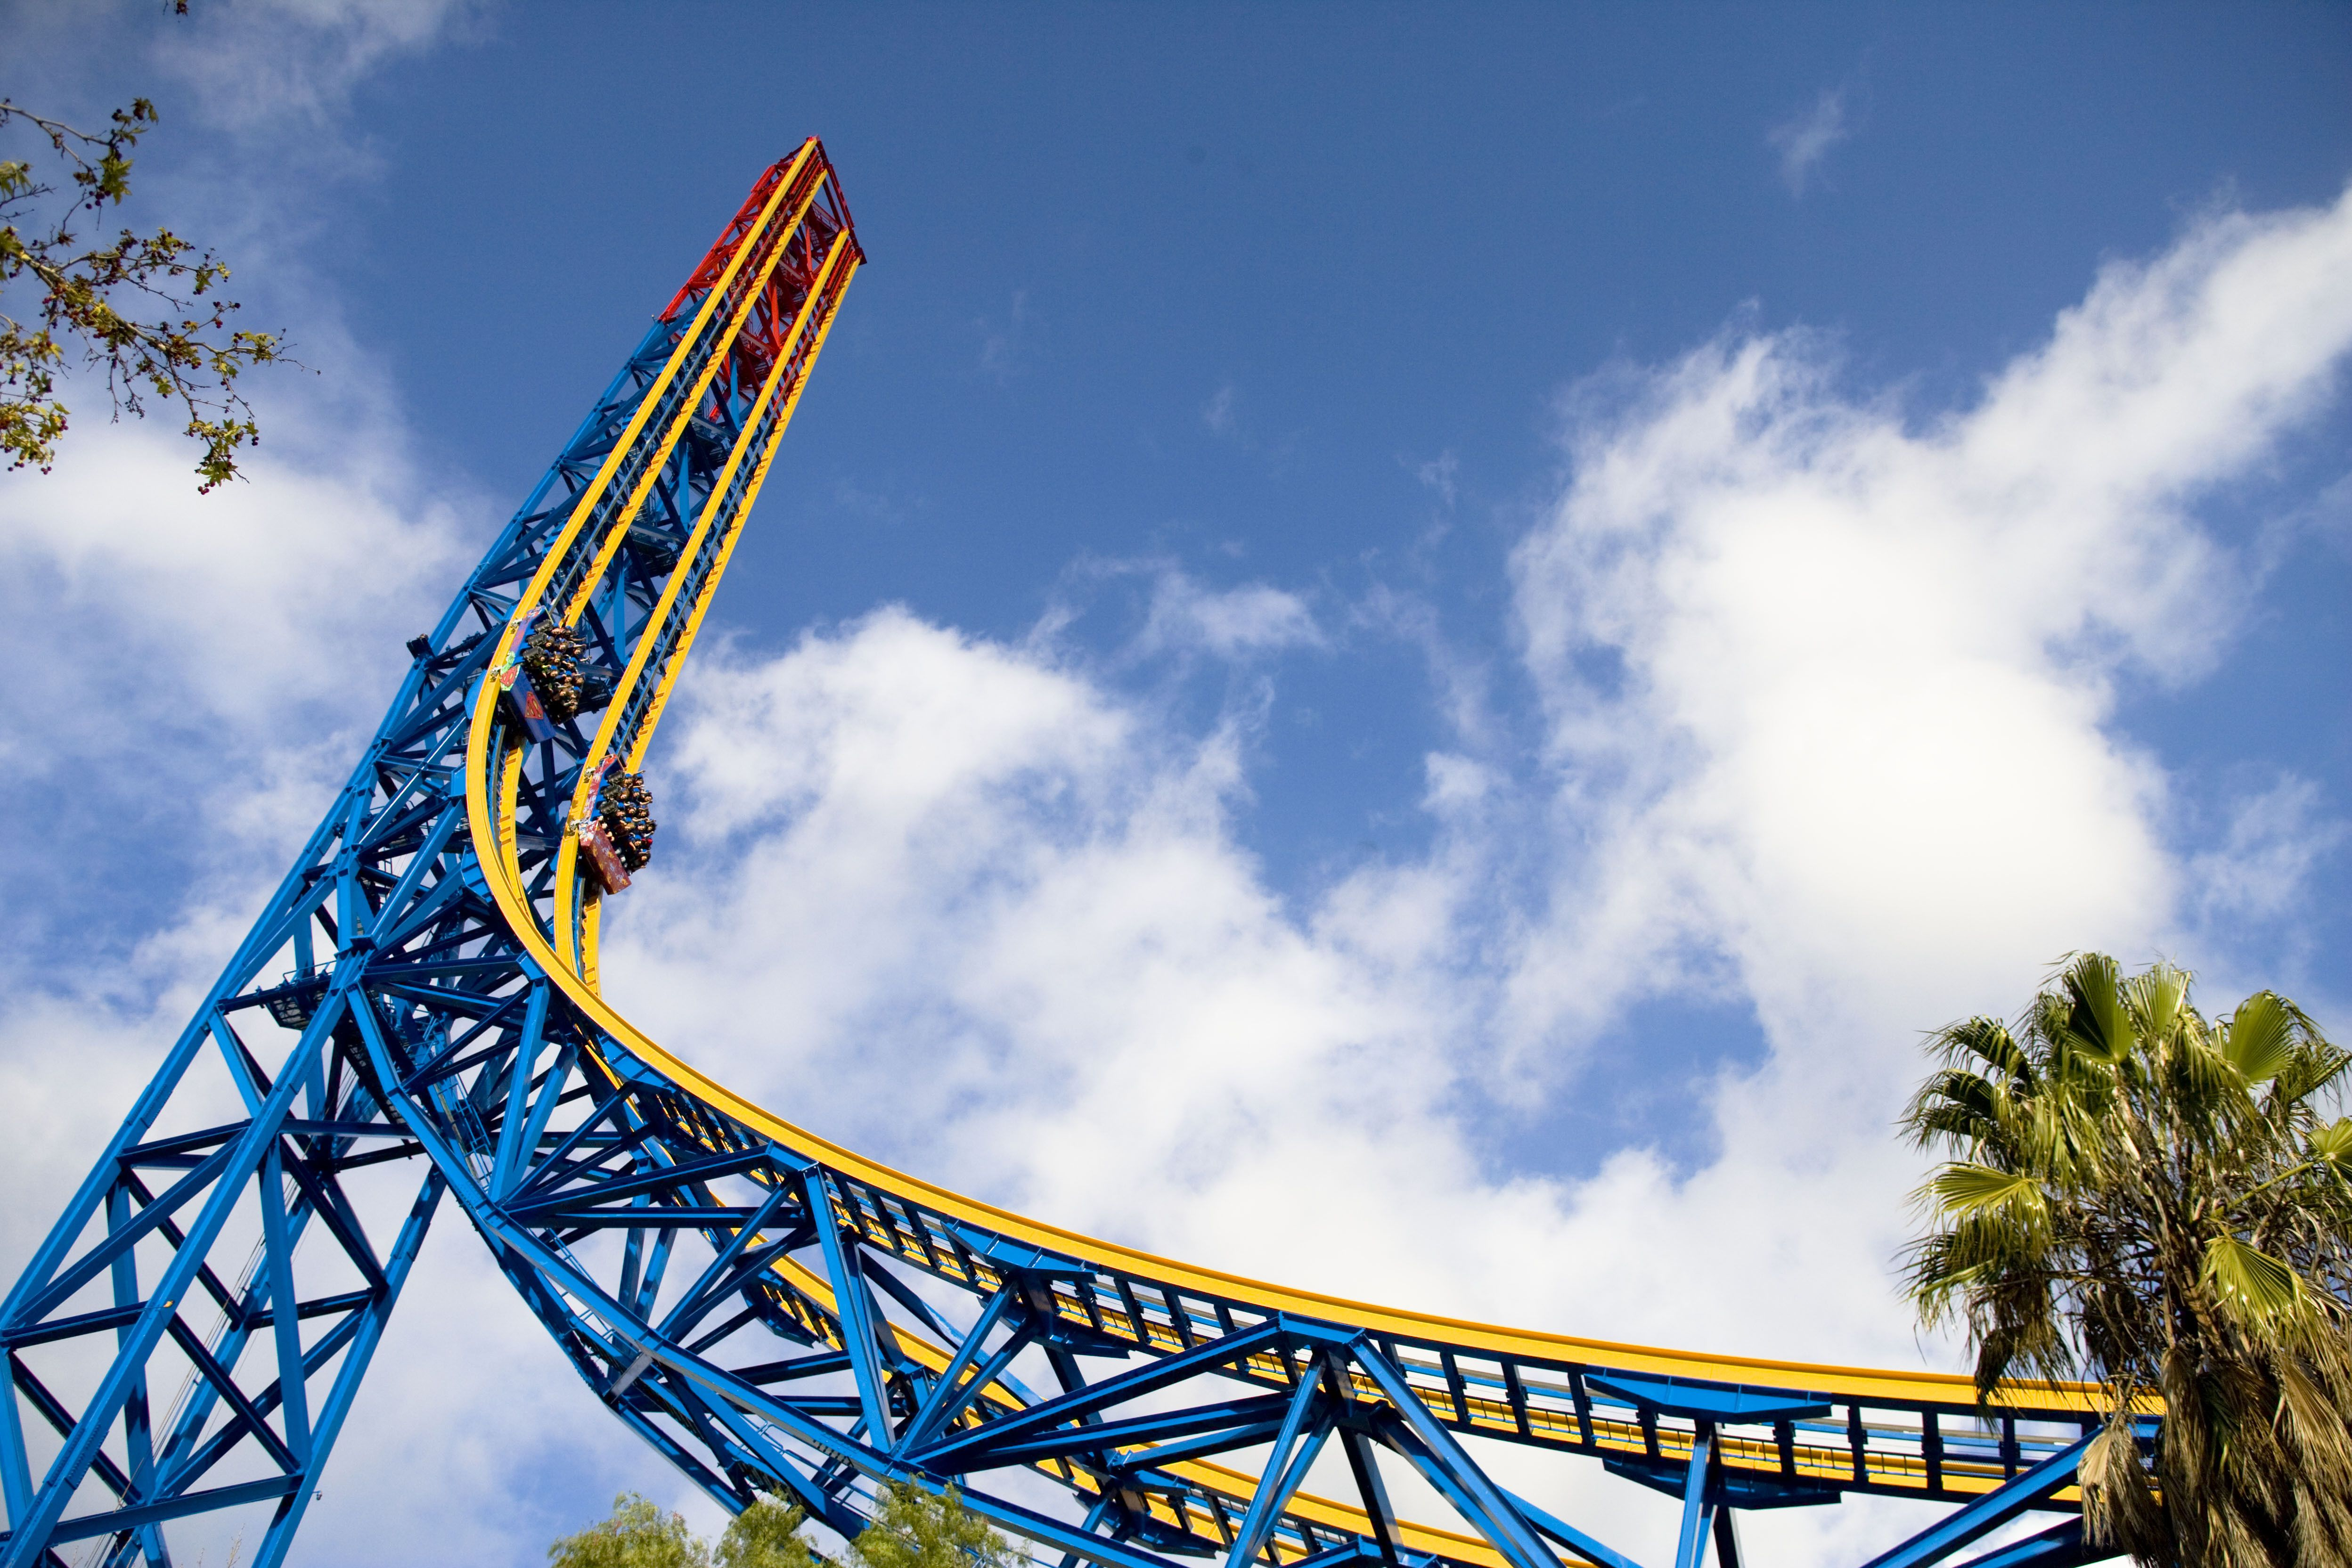 Superman: Escape from Krypton coaster at Six Flags Magic Mountain.